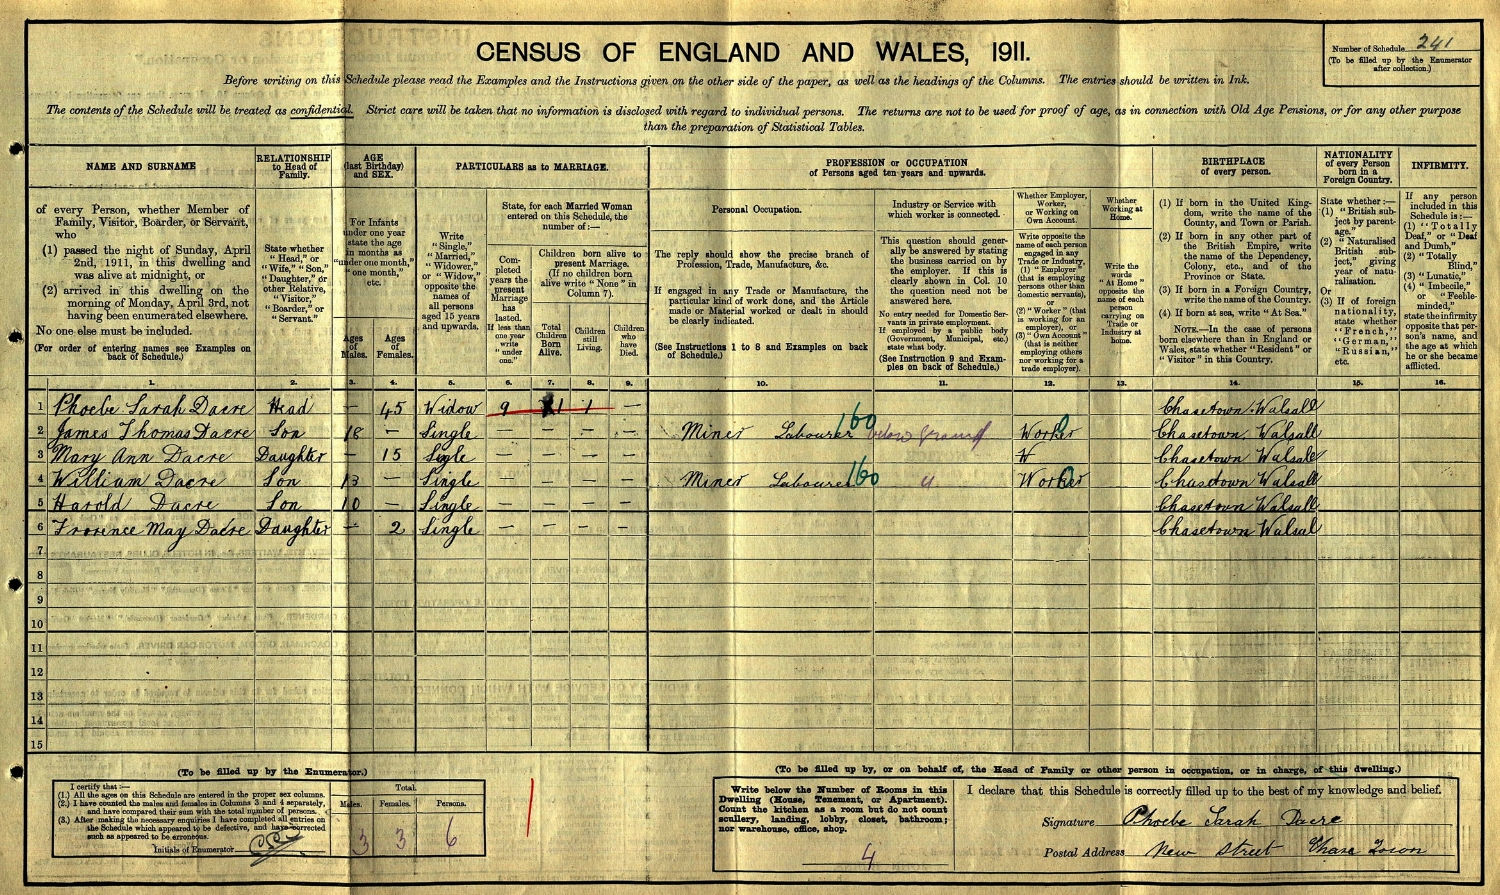 Extract from the 1911 census showing the family of William Jude and Phoebe Sarah Daker